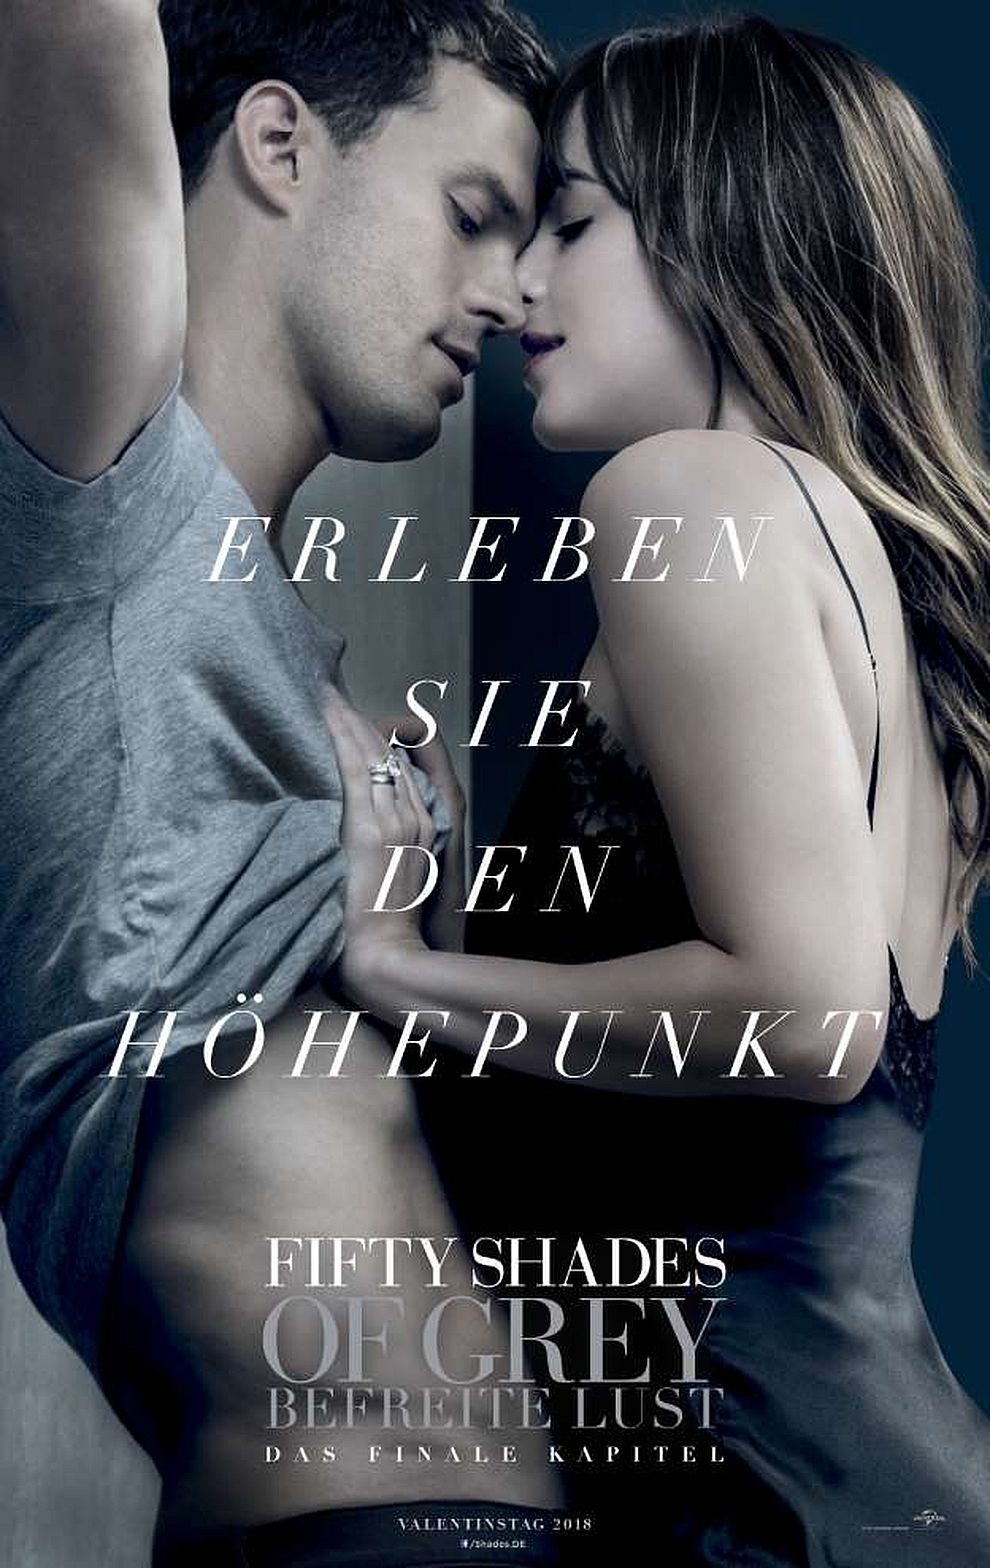 Fifty Shades of Grey - Befreite Lust (Poster)